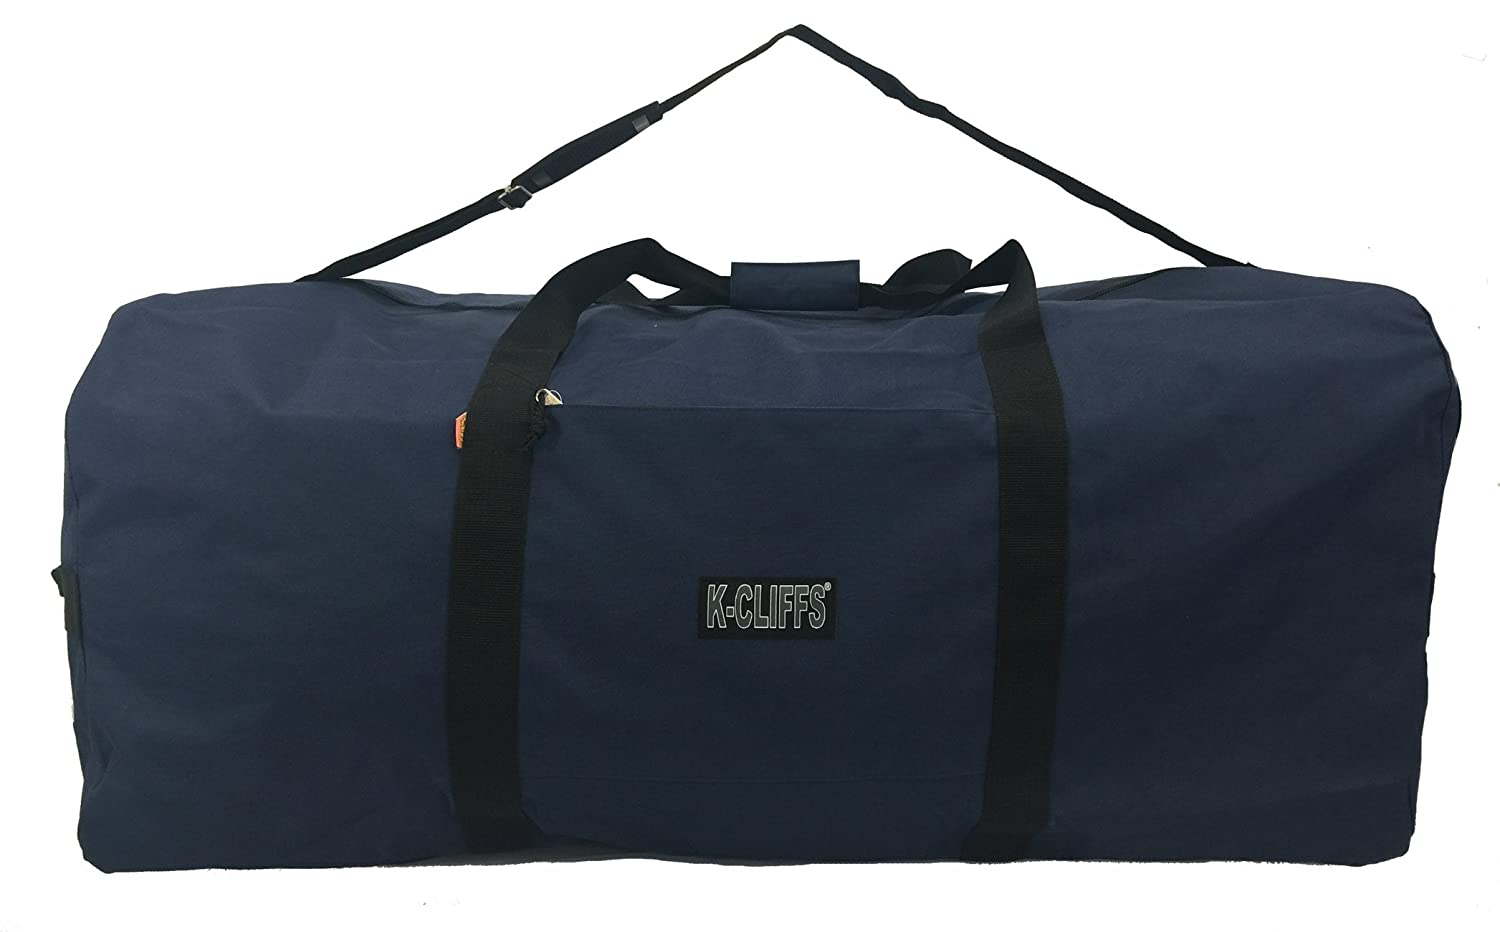 Heavy Duty Cargo Duffel Large Sport Gear Drum Set Equipment Hardware Travel Bag Rooftop Rack Bag